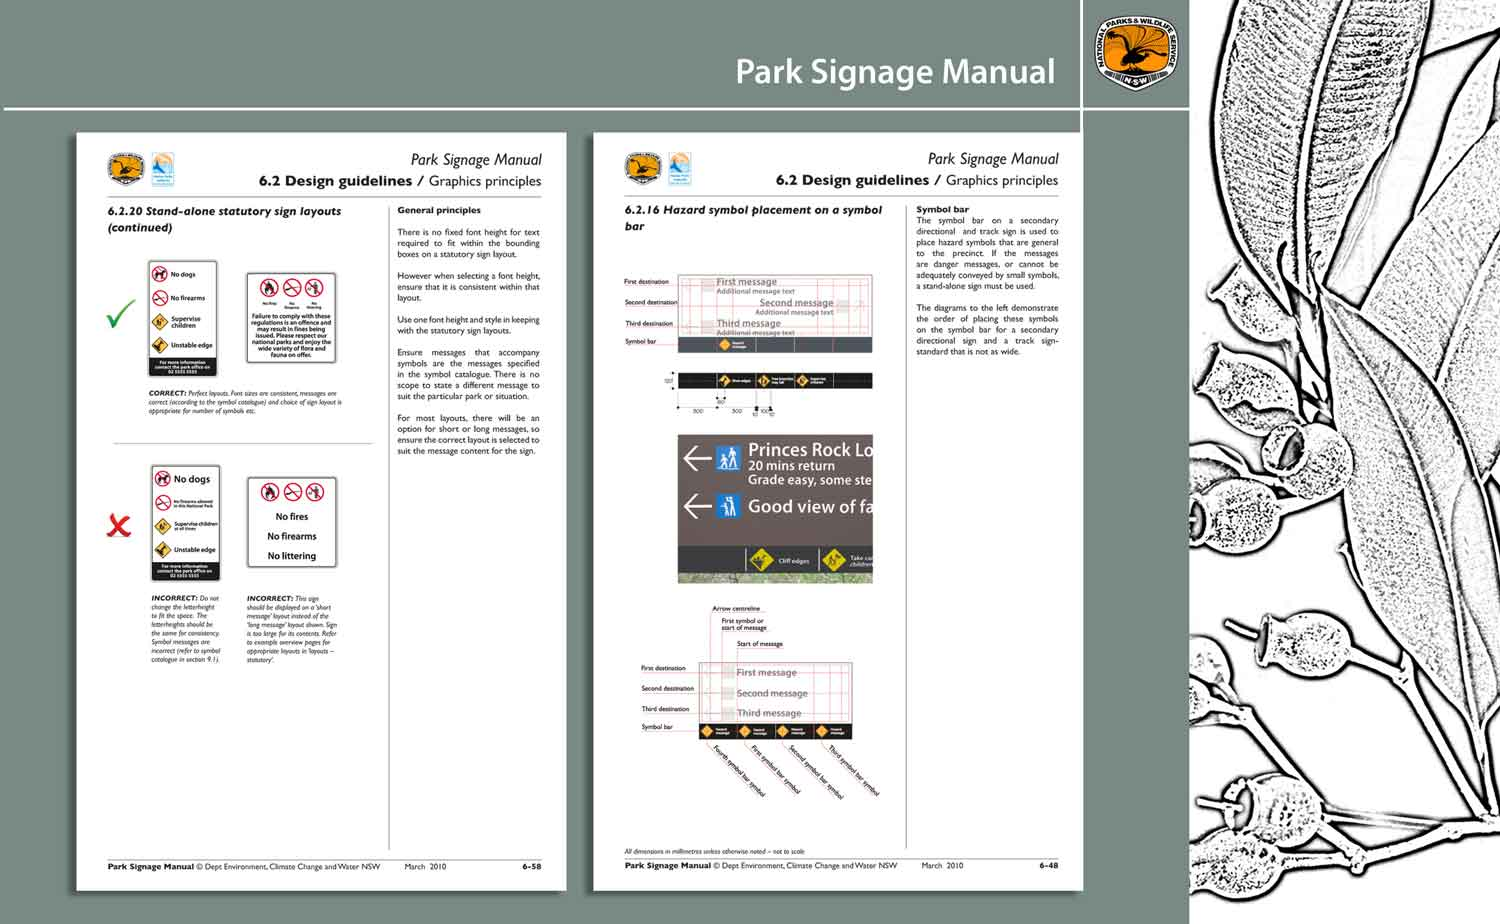 NSW National Parks and Wildlife Service Signage Manual